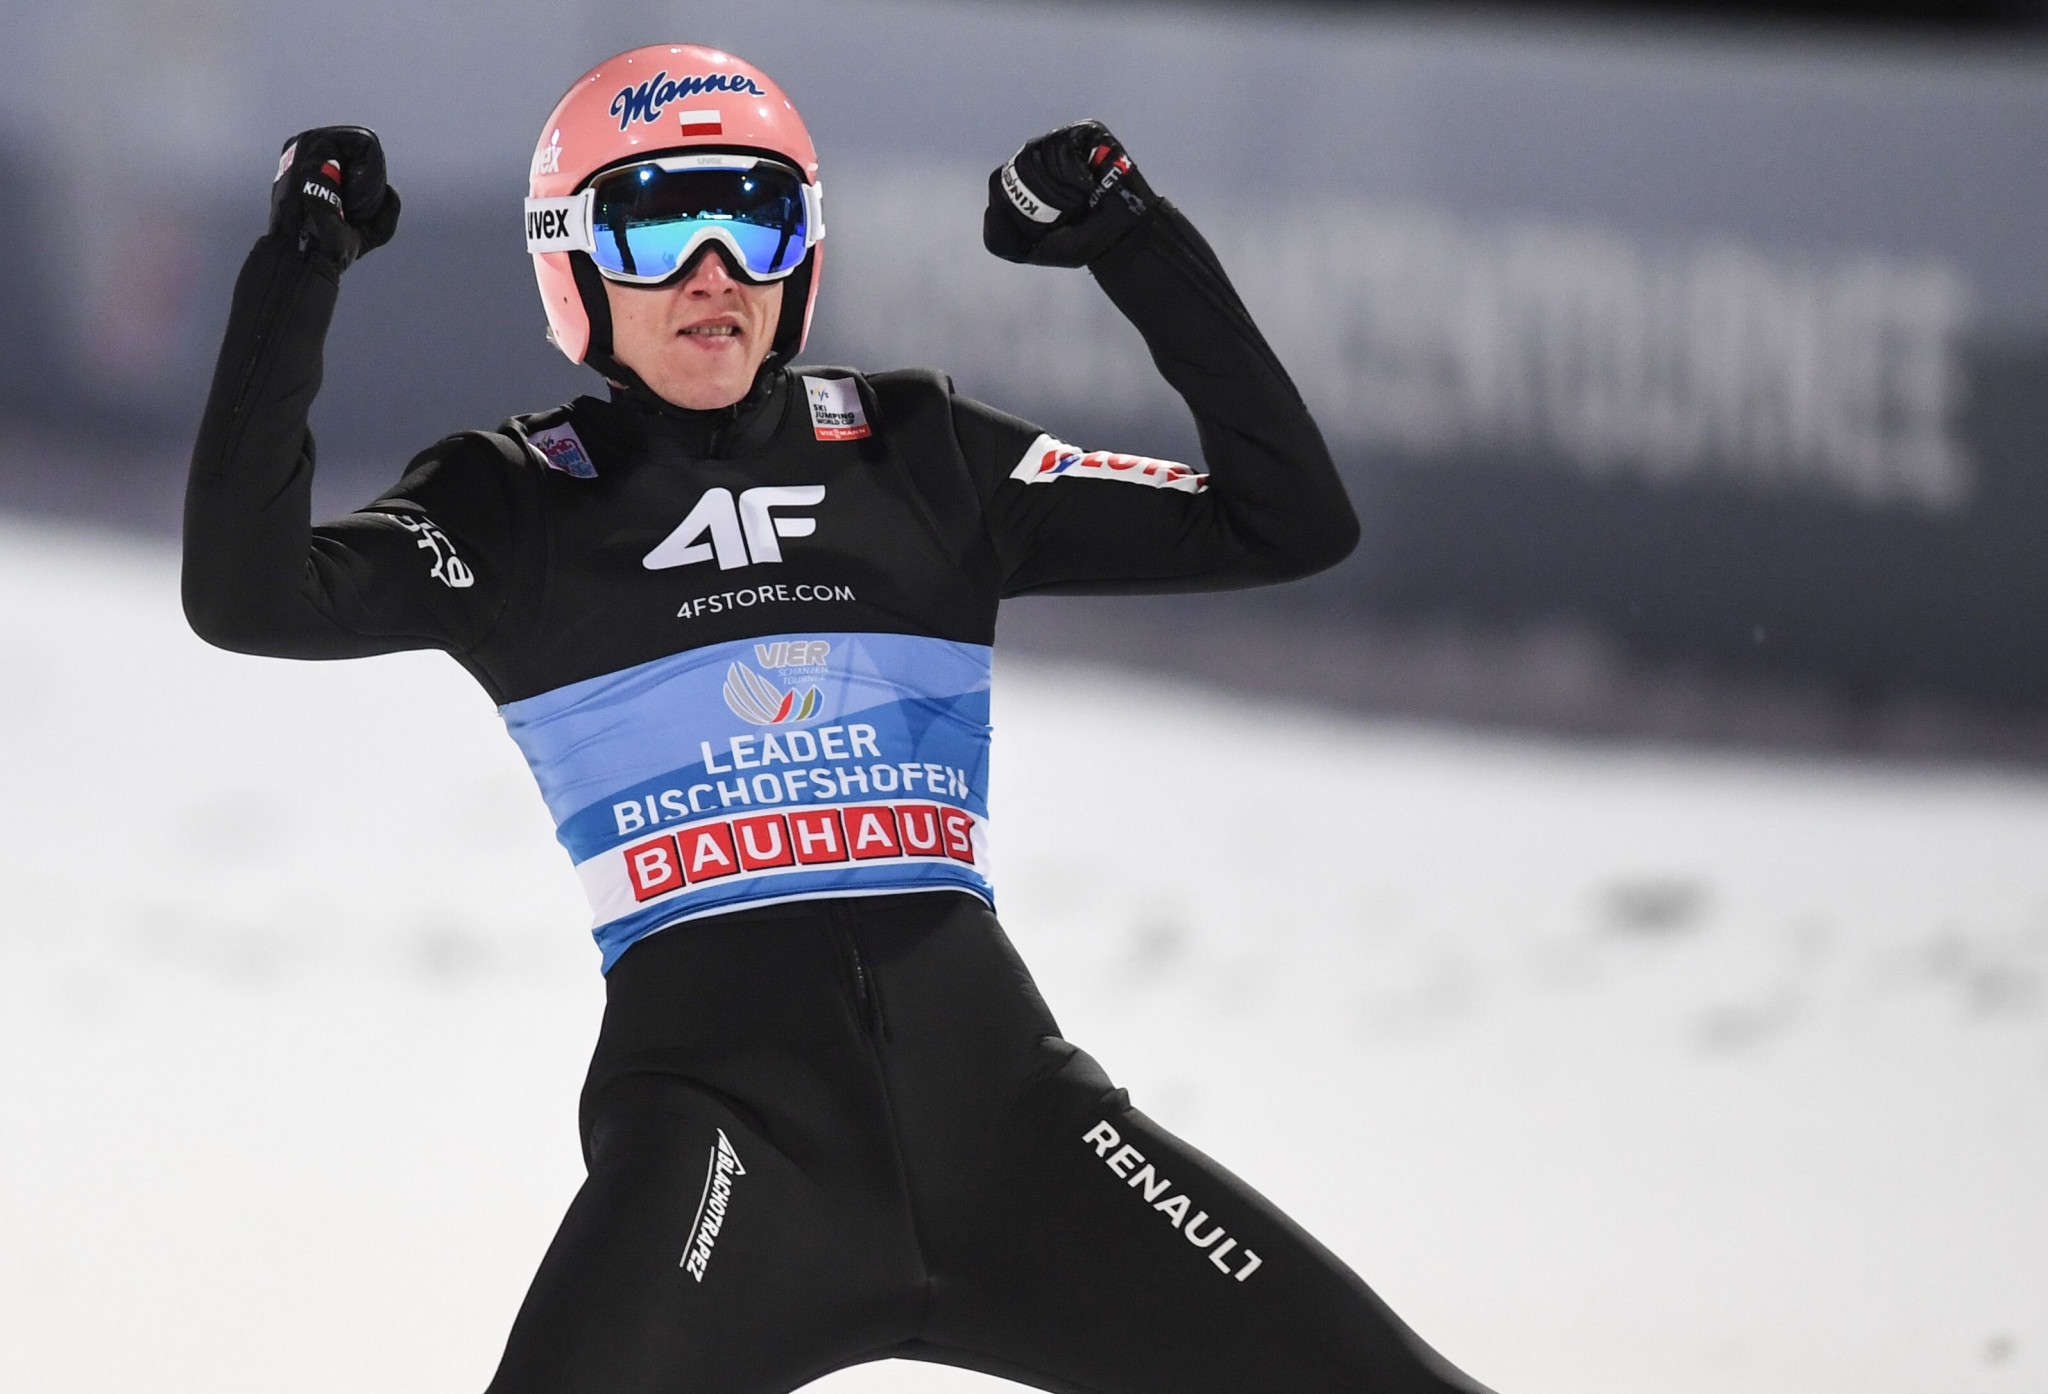 Two-time winner Stoch holds Four Hills Tournament lead entering Bischofshofen finale